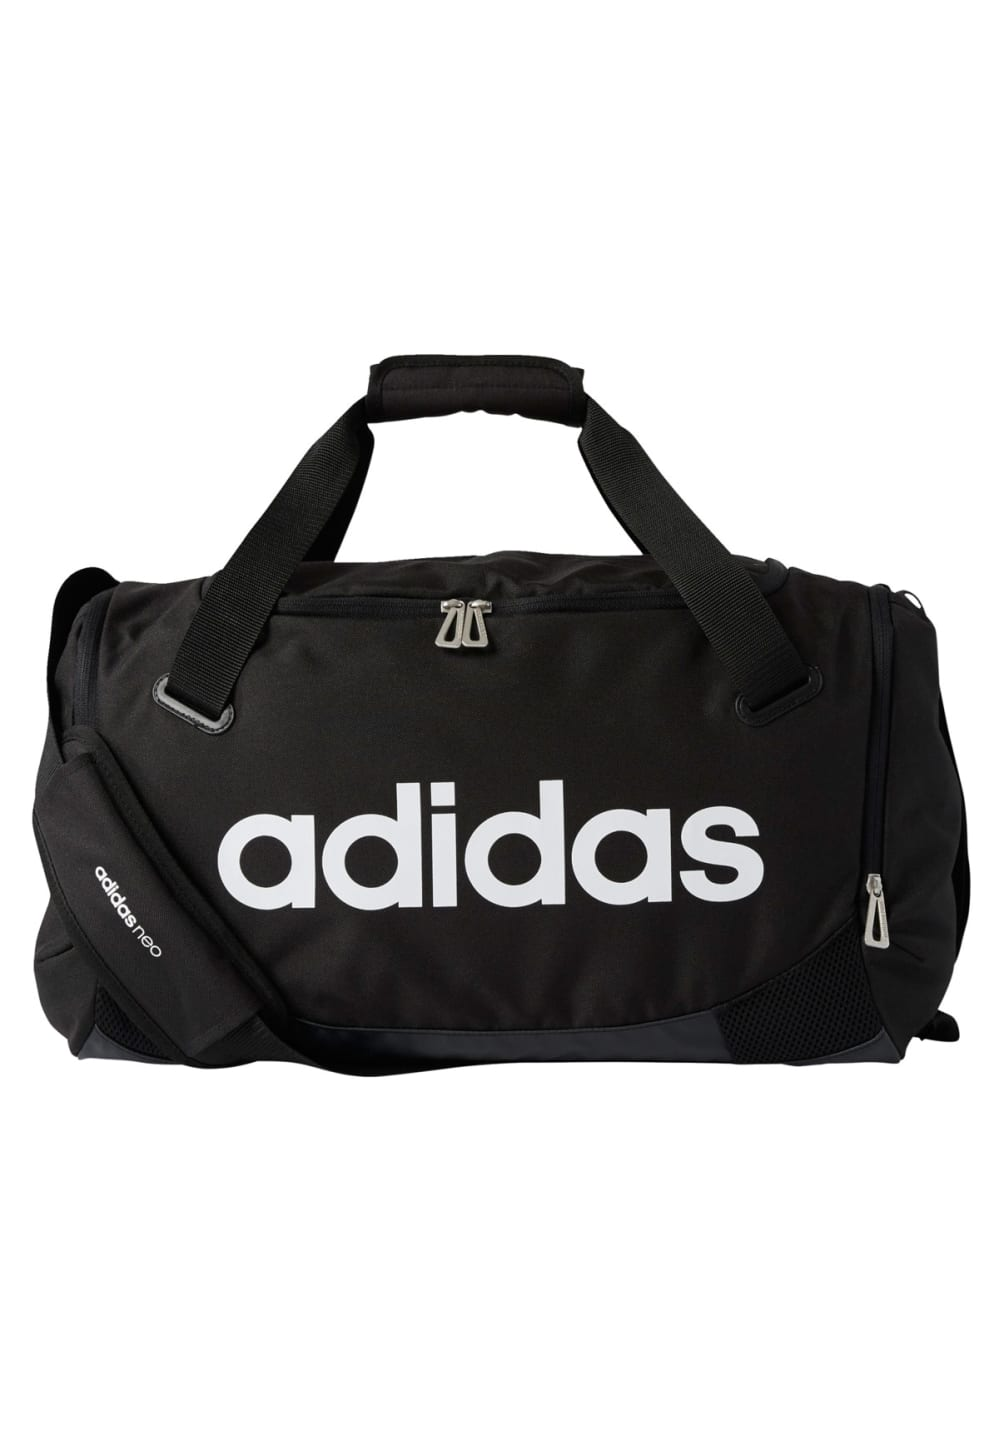 Daily Sacs Bag Neo Pour Homme Gym Adidas Sport Noir VpjqSzLUMG